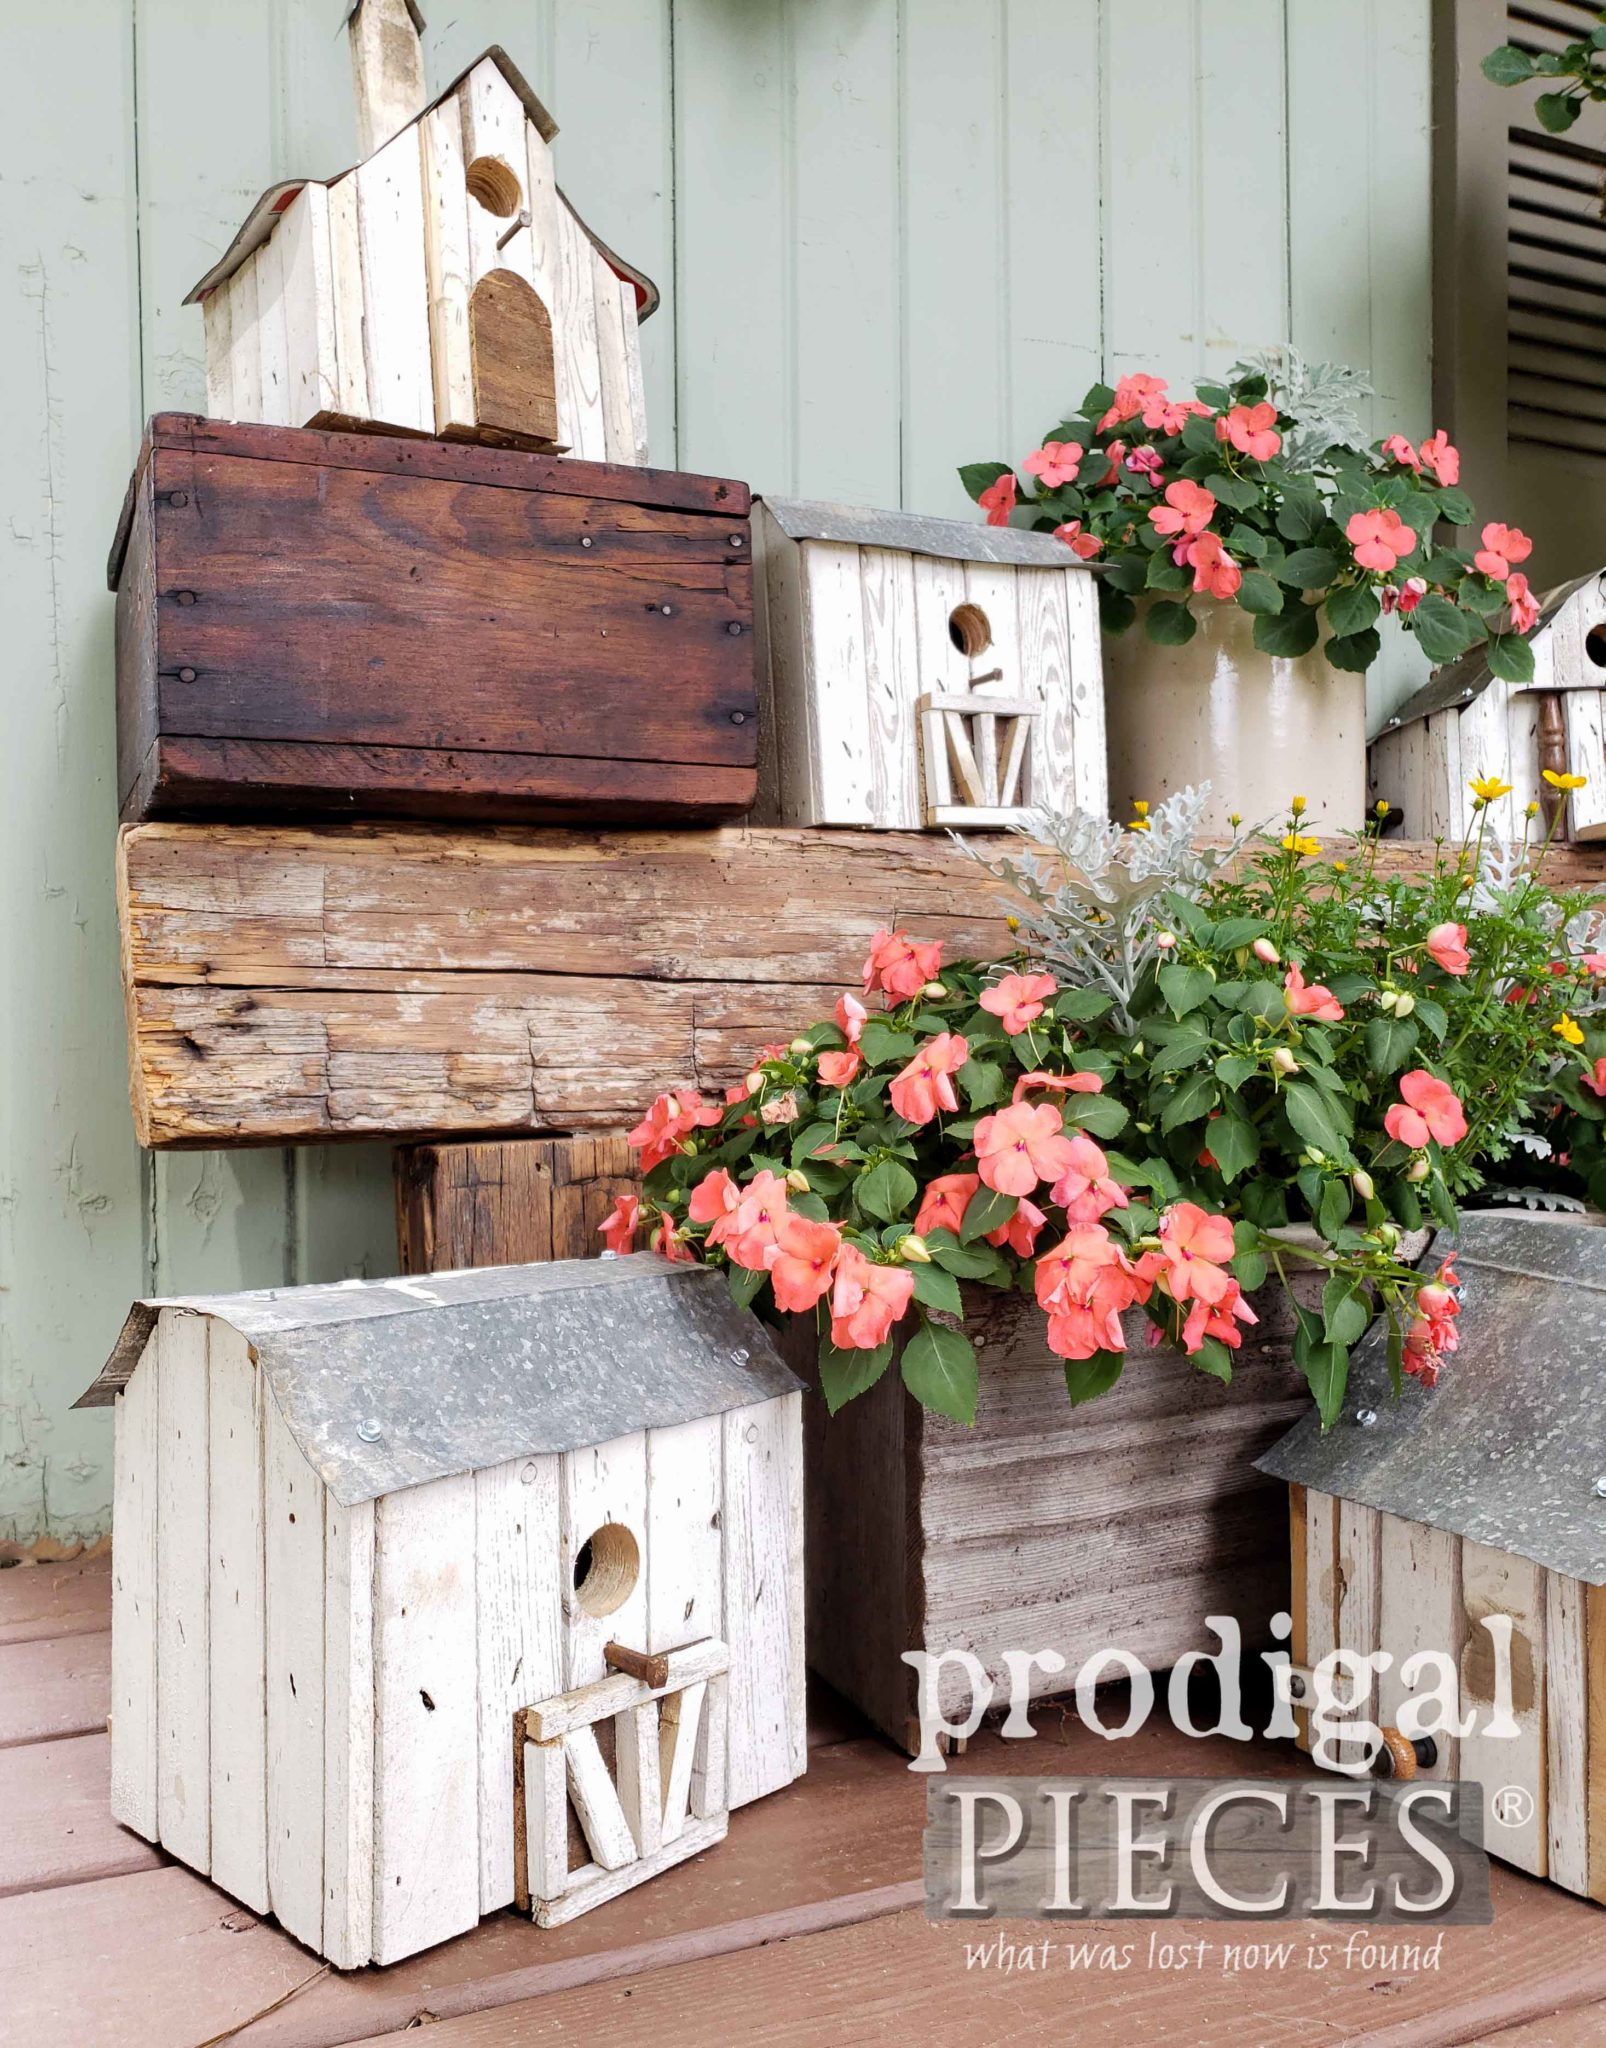 Handmade Farmhouse Barn Birdhouse from Reclaimed Part by Larissa of Prodigal Pieces | prodigalpieces.com